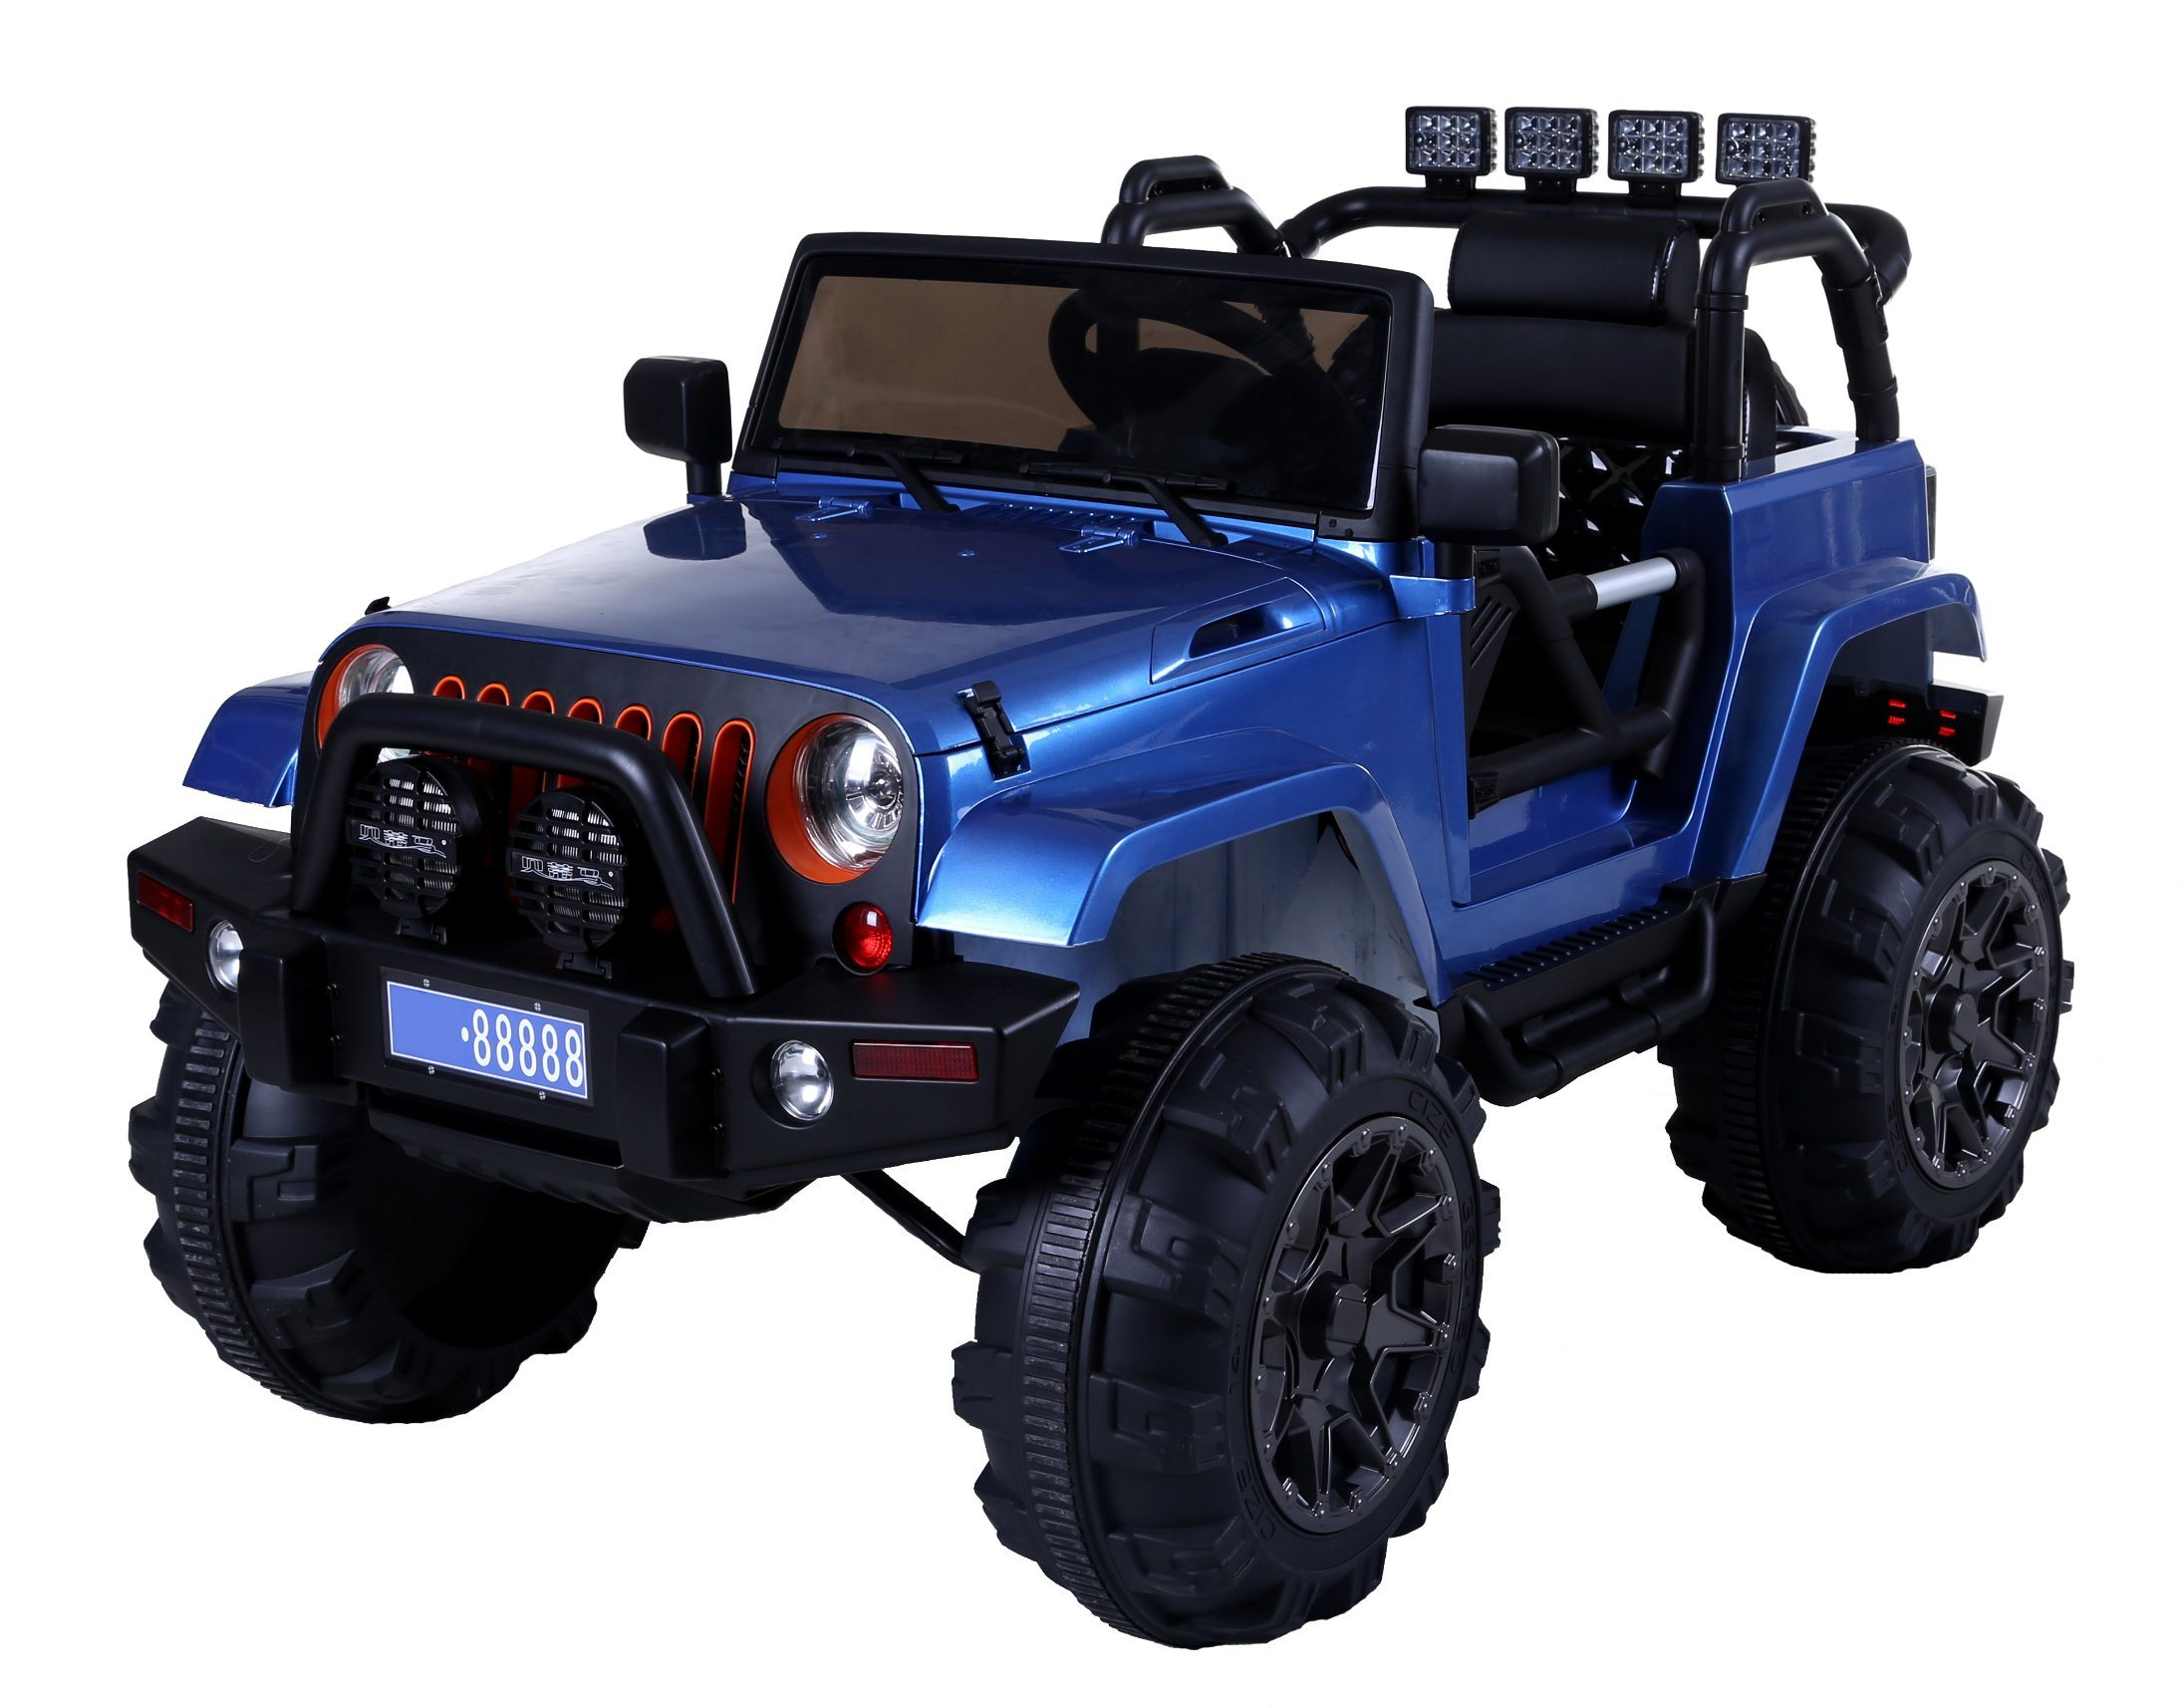 Rr-14800905-Ride on Car with 2.4G Remote Control for Kids 2016